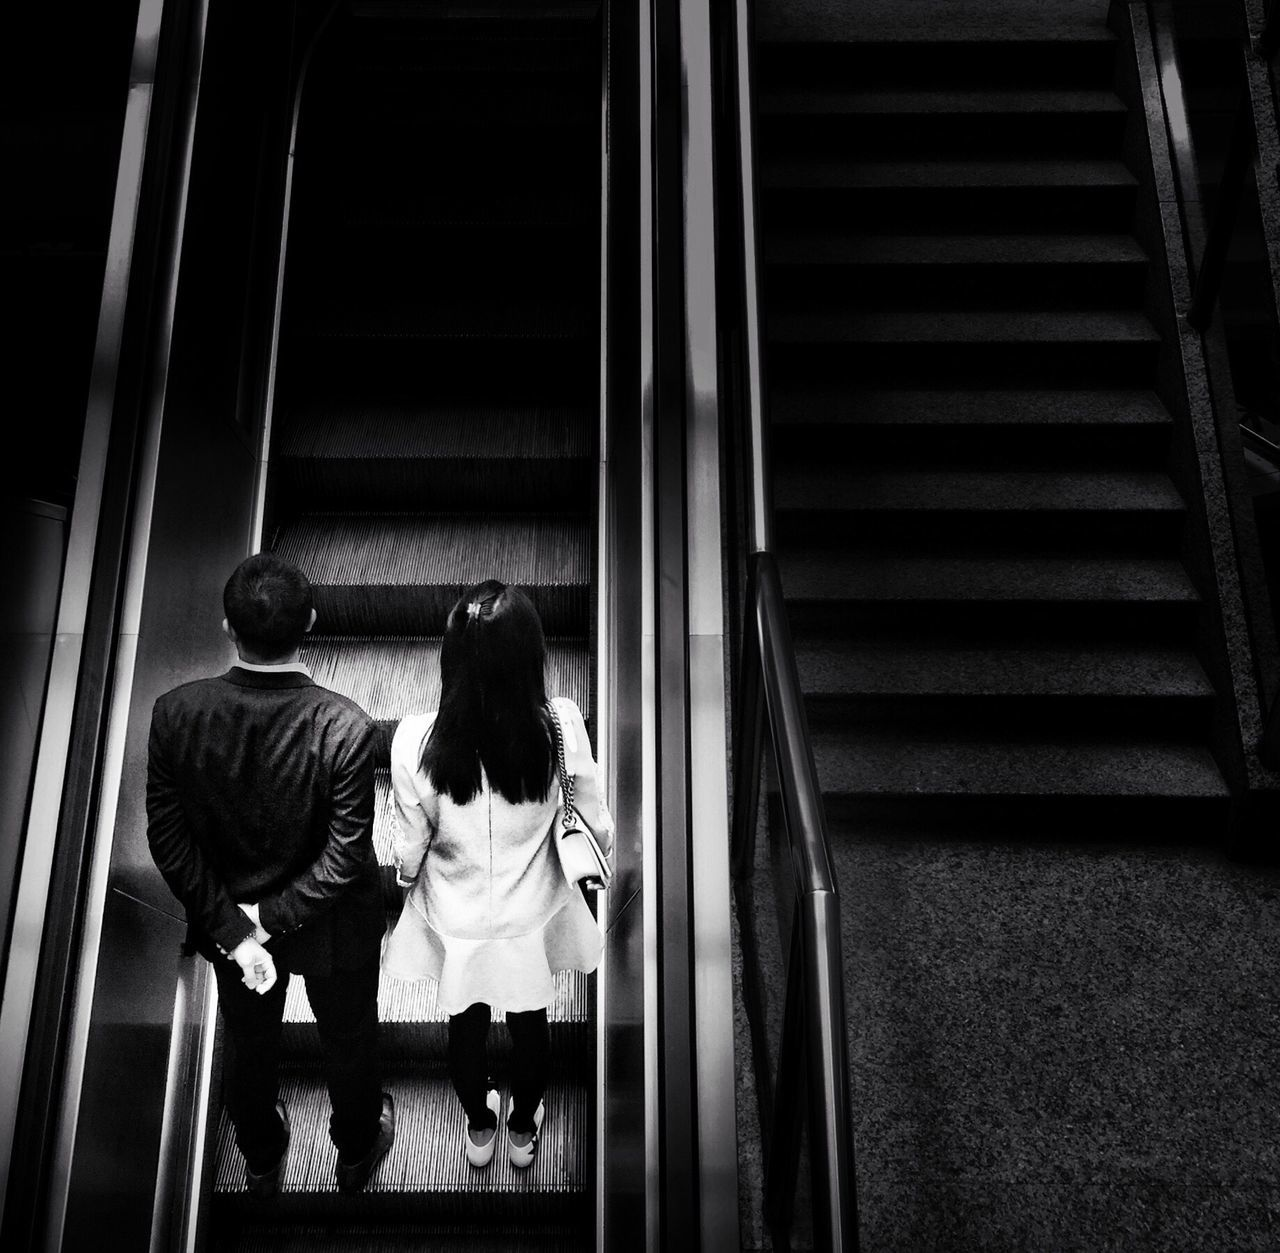 High Angle View Of Man And Woman On Escalator